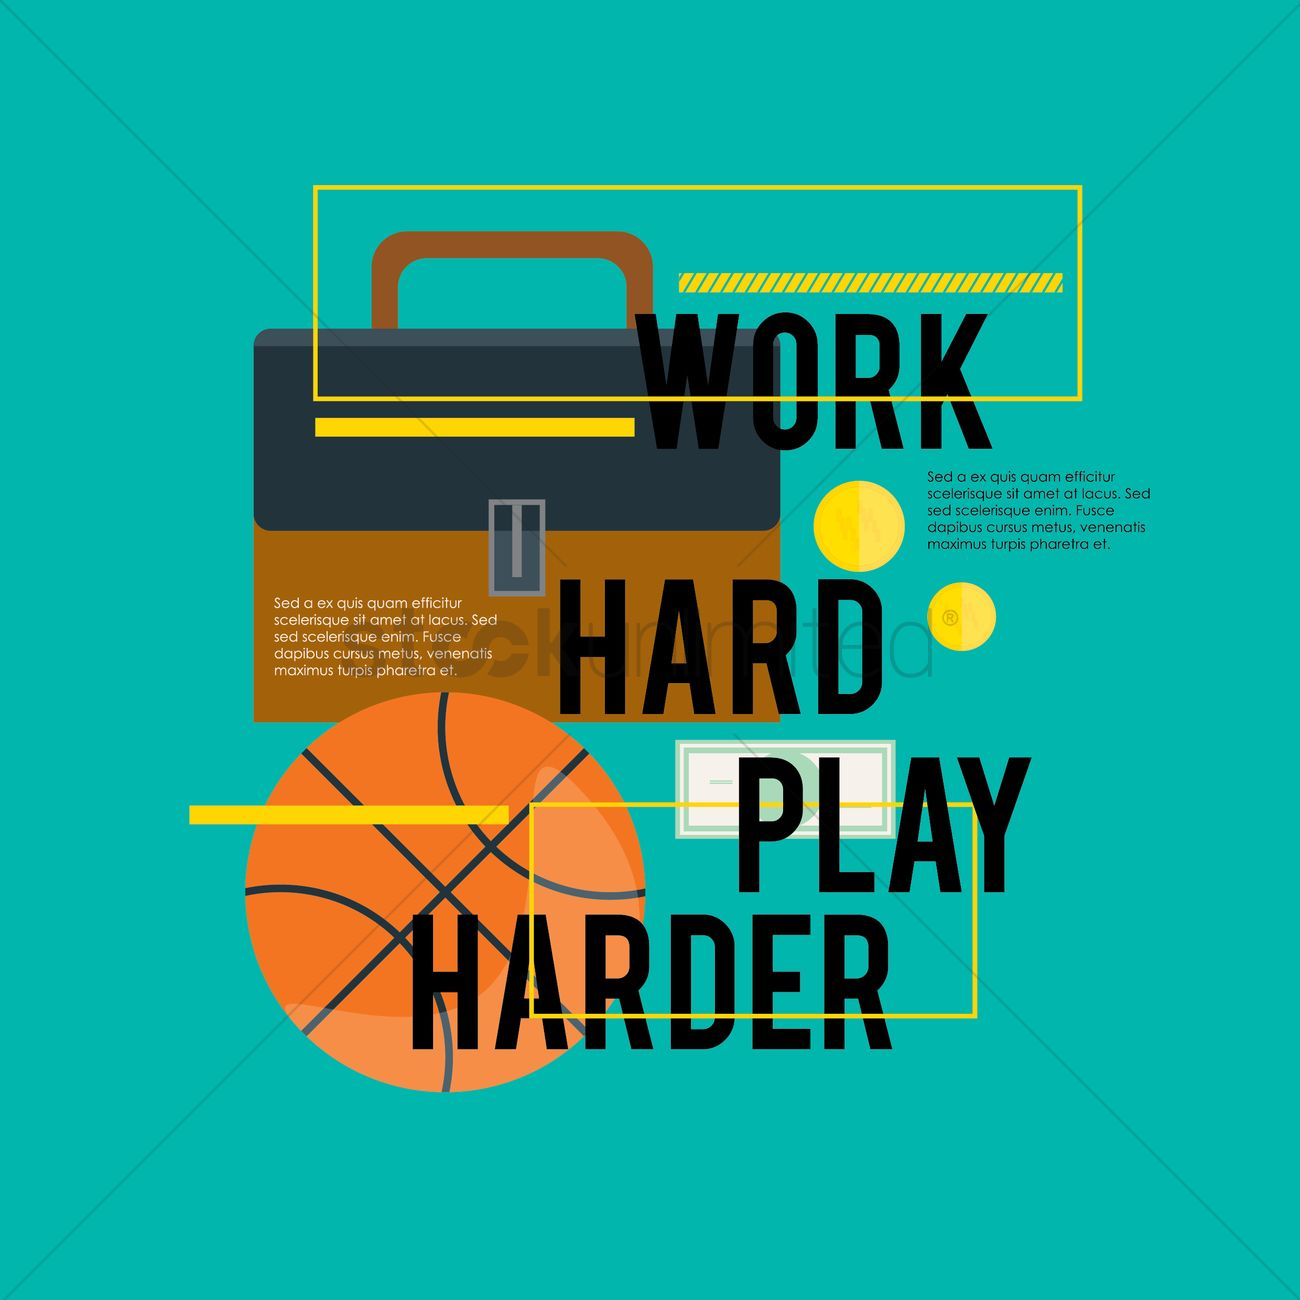 Work hard play harder quote Vector Image - 1483784 ...